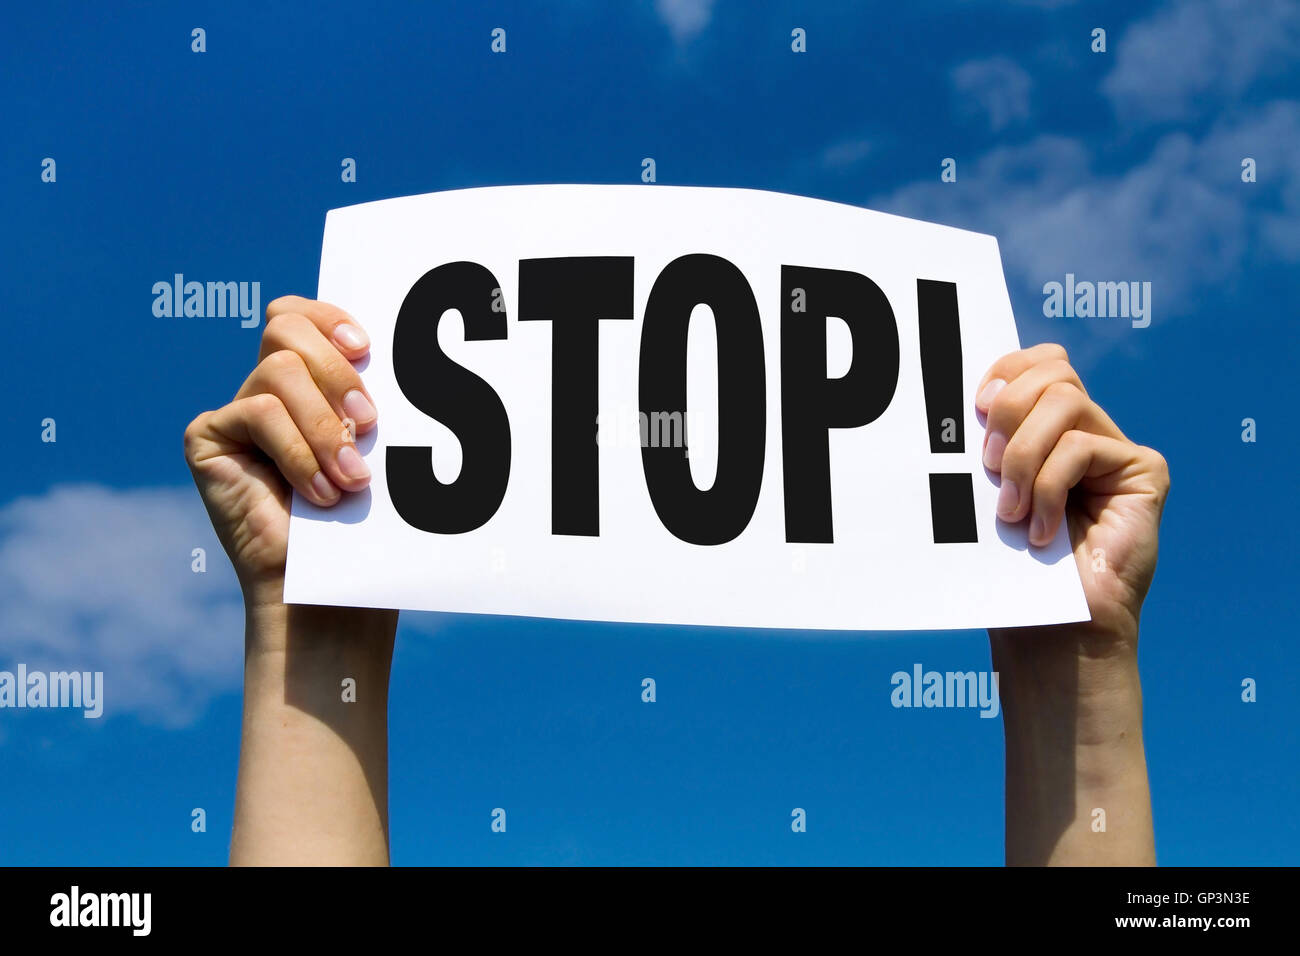 stop, hands holding paper sign, concept - Stock Image